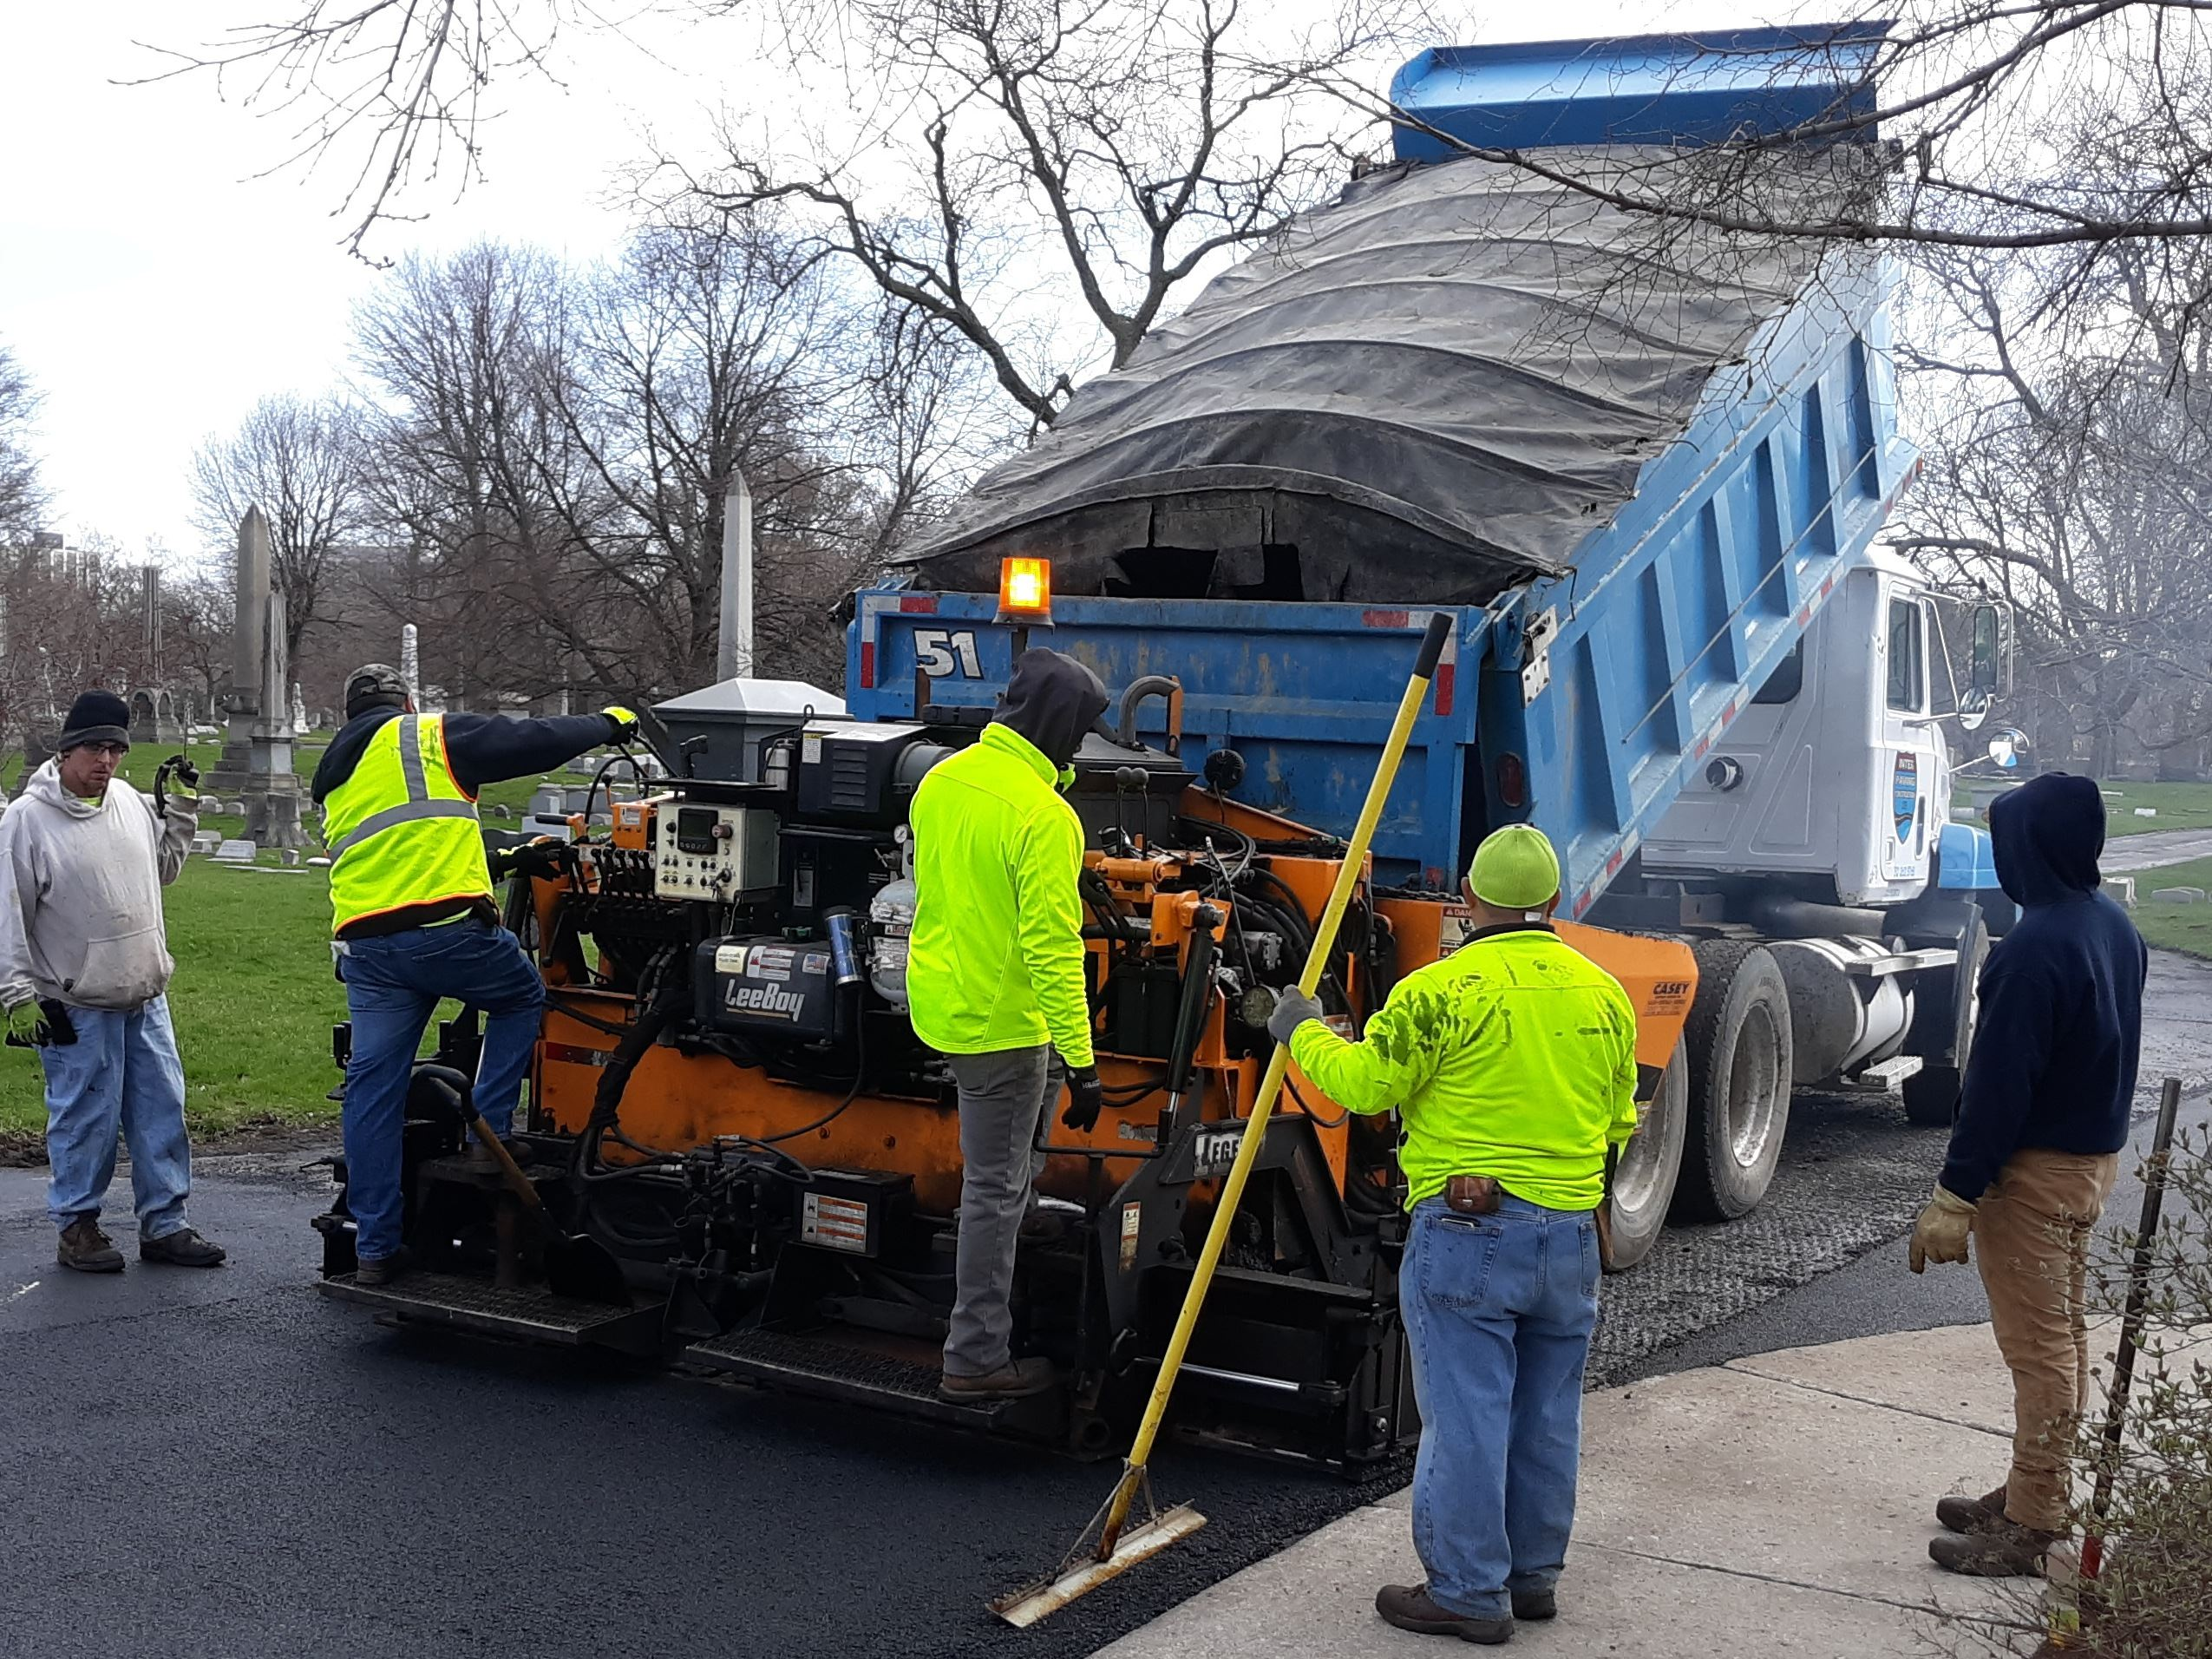 Workers using a truck to install a new asphalt road